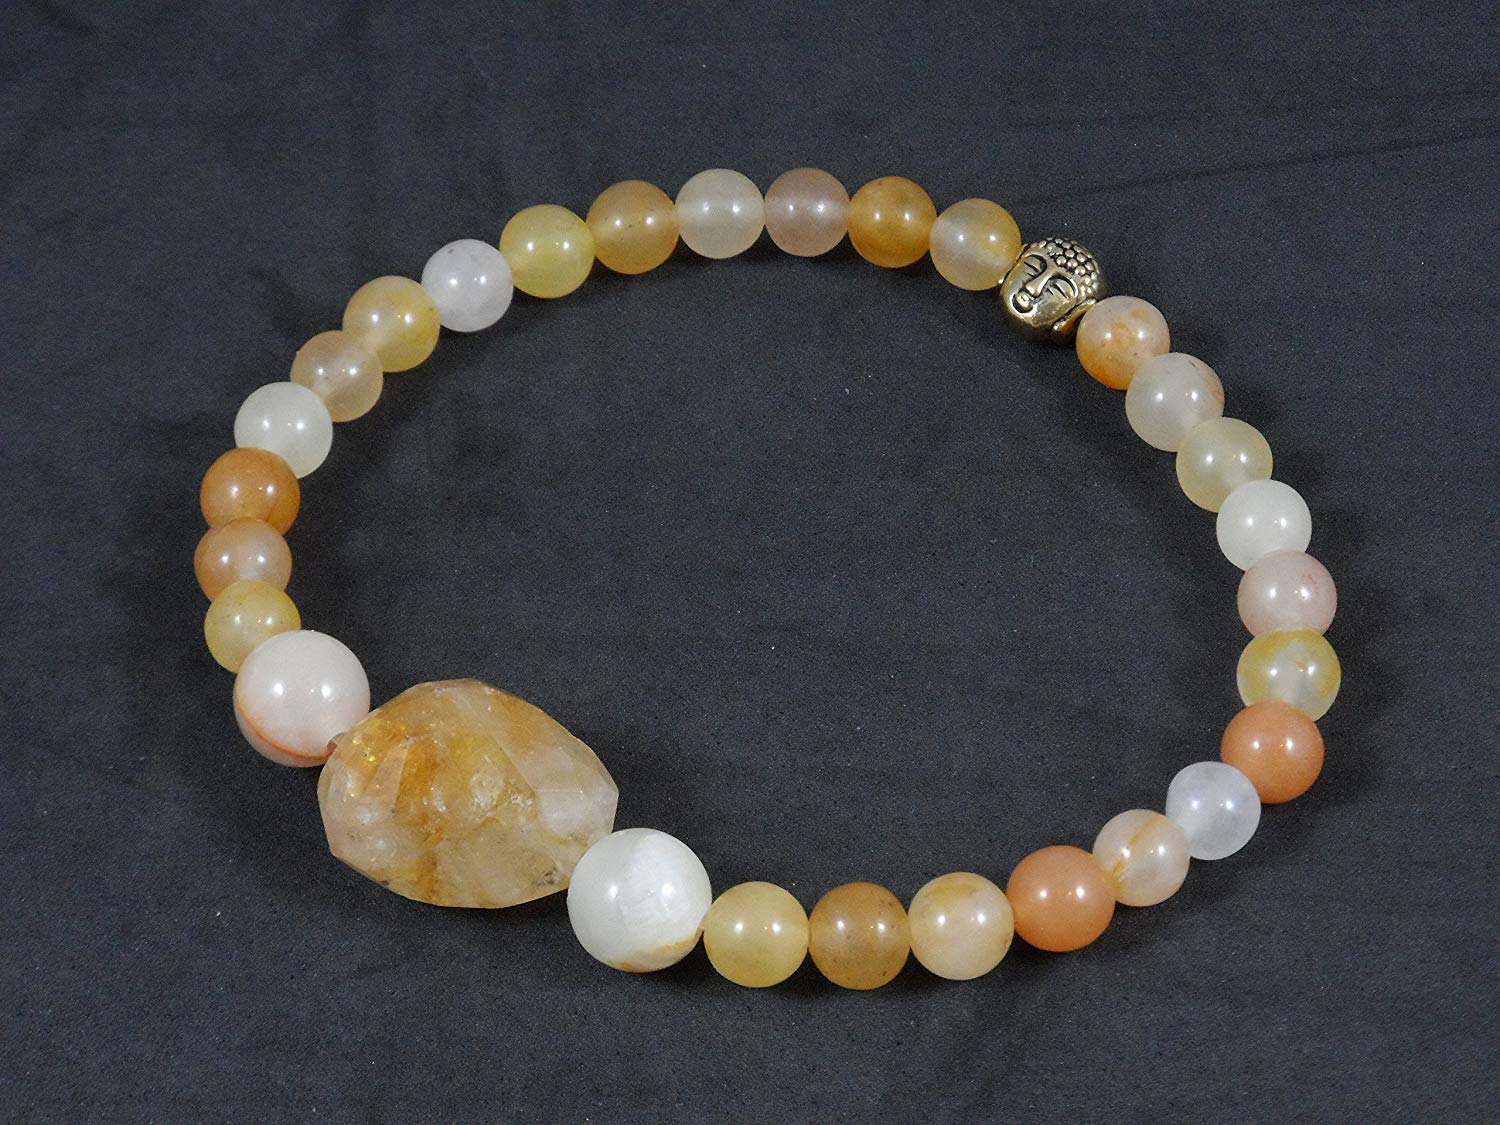 8mm, 6mm and 17 x 14mm Nugget Citrine with Gold Toned Siddhartha